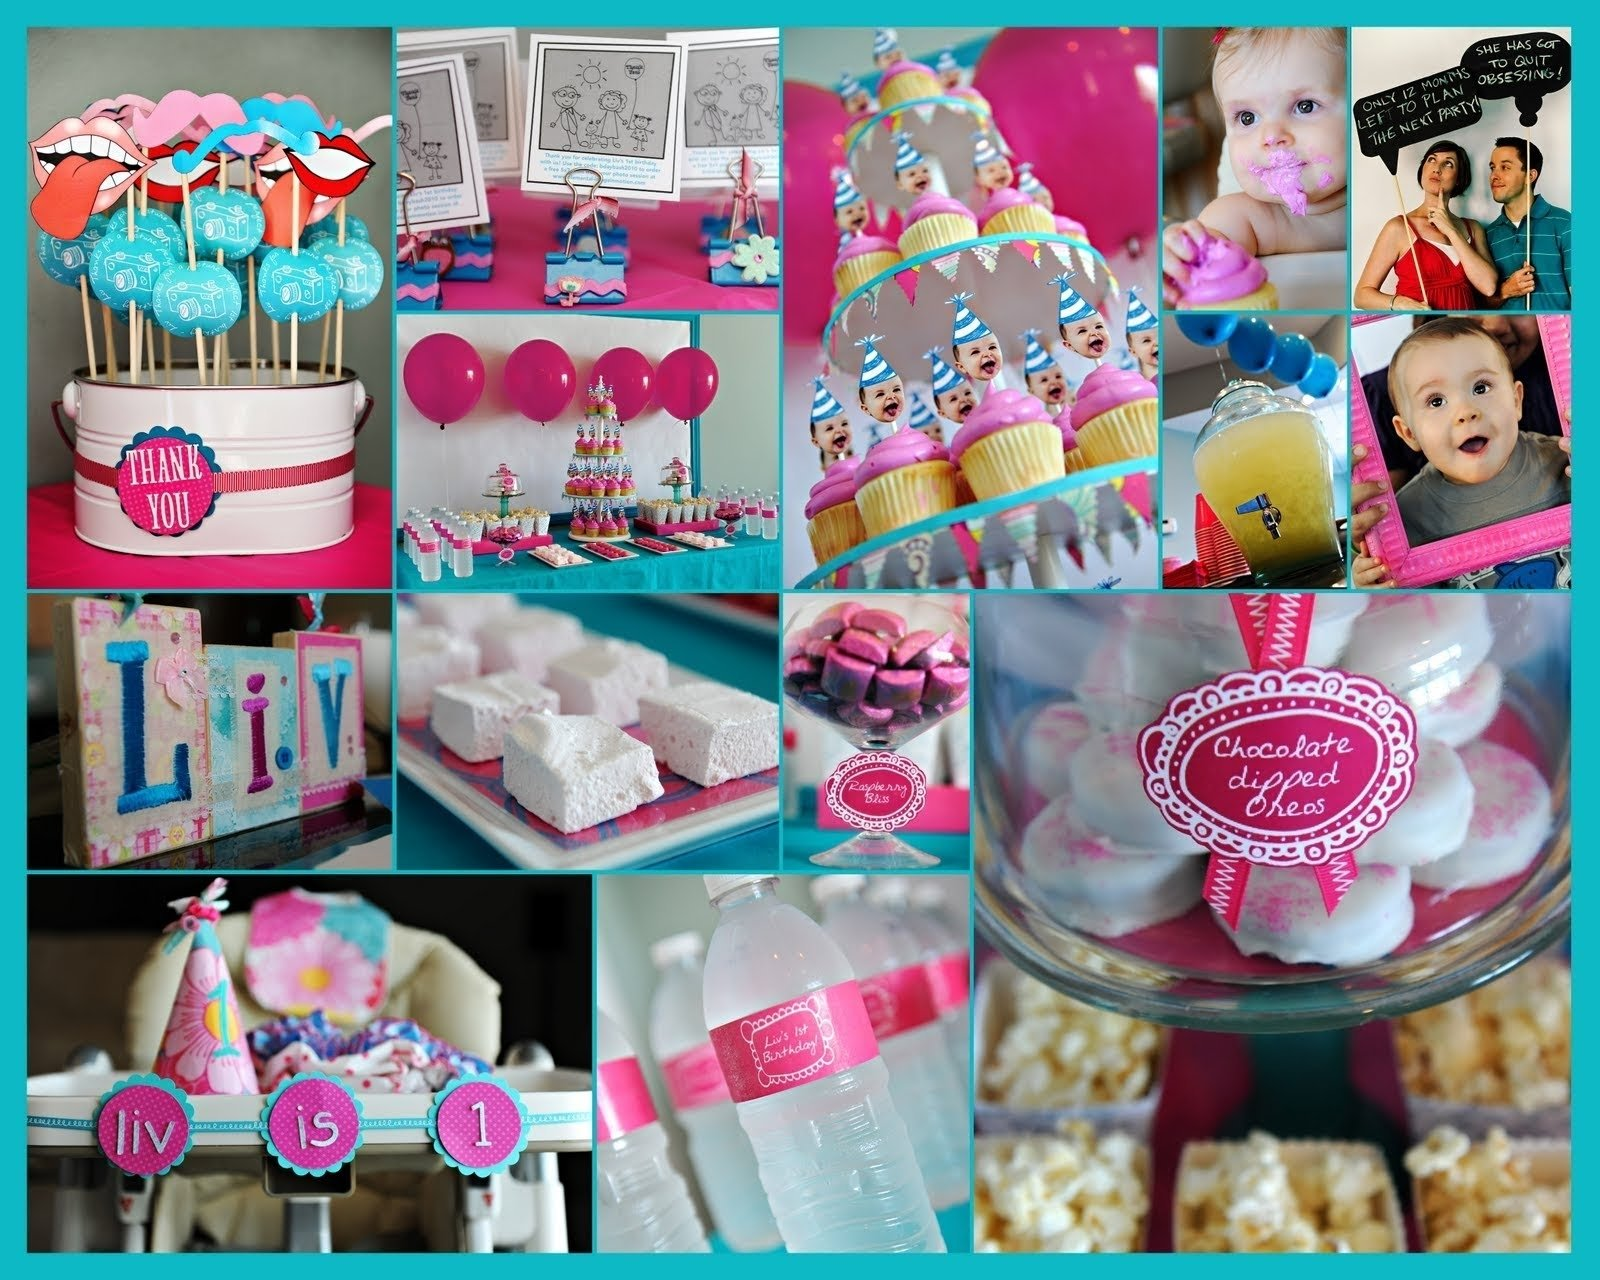 10 Cute One Year Old Birthday Ideas first birthday party ideas 1st birthday party ideas kids 7 2020